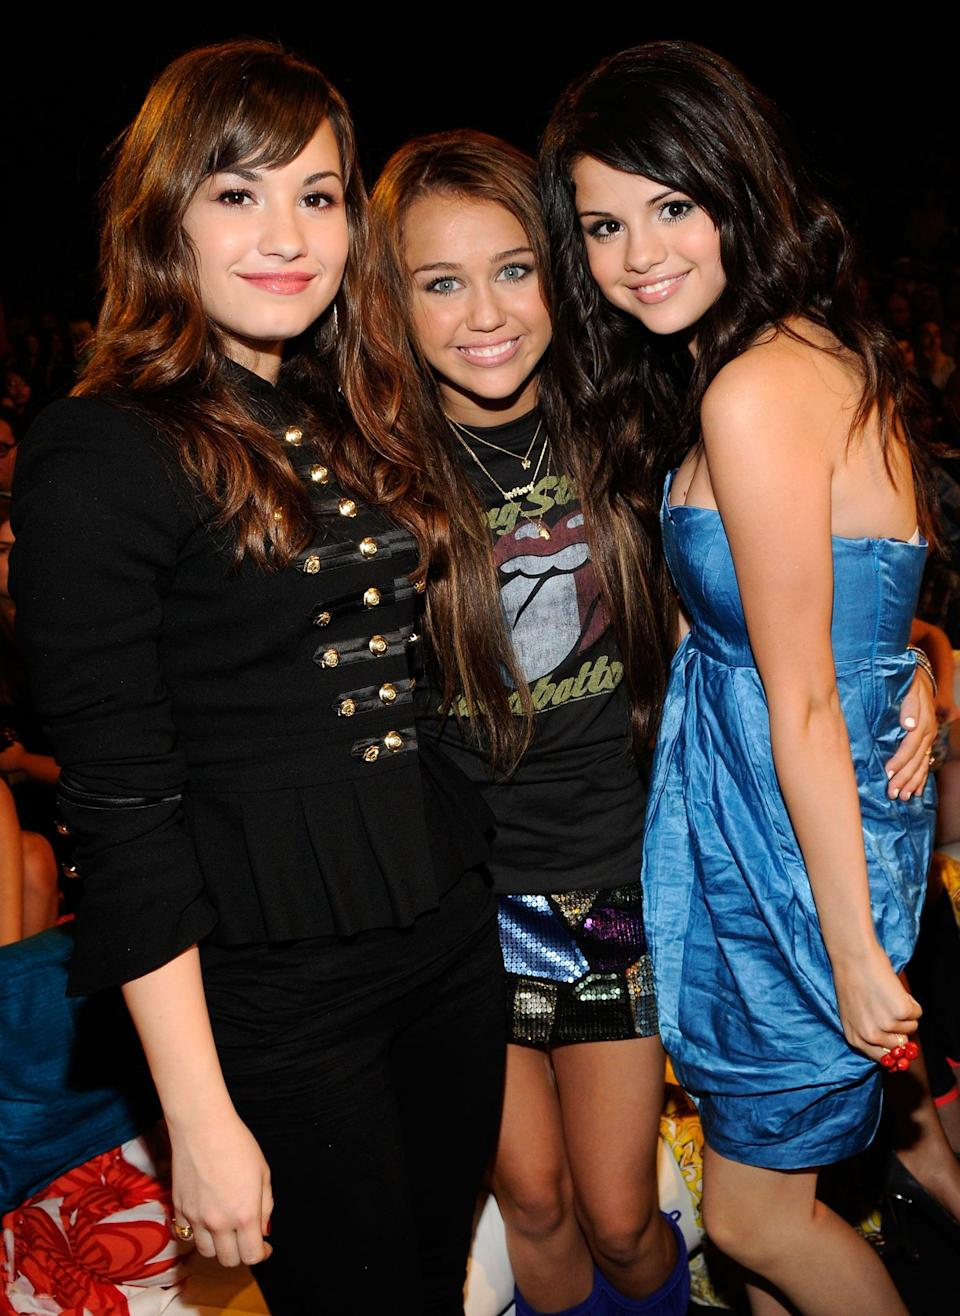 """<p>At the Teen Choice Awards in LA, Selena met up with her pals Demi Lovato and <a class=""""link rapid-noclick-resp"""" href=""""https://www.popsugar.com/Miley-Cyrus"""" rel=""""nofollow noopener"""" target=""""_blank"""" data-ylk=""""slk:Miley Cyrus"""">Miley Cyrus</a>.</p>"""